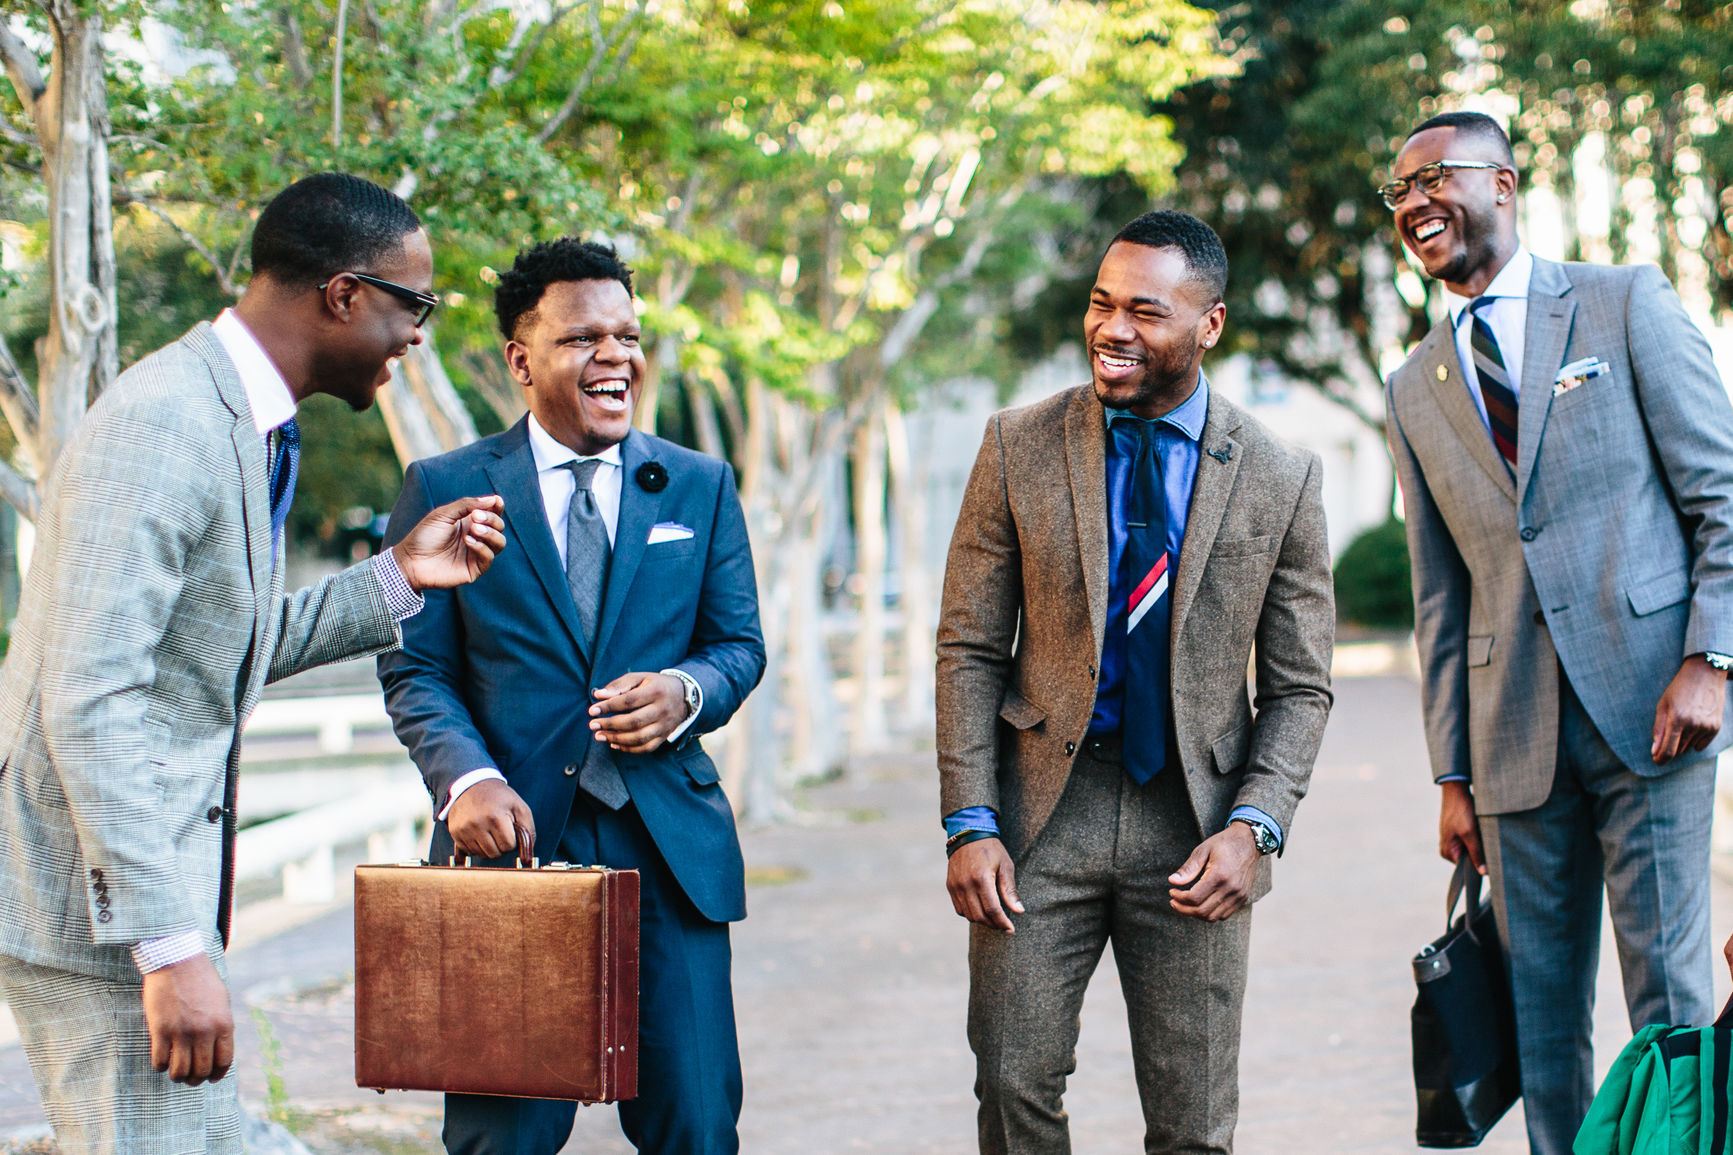 Group of businessmen talking and laughing.